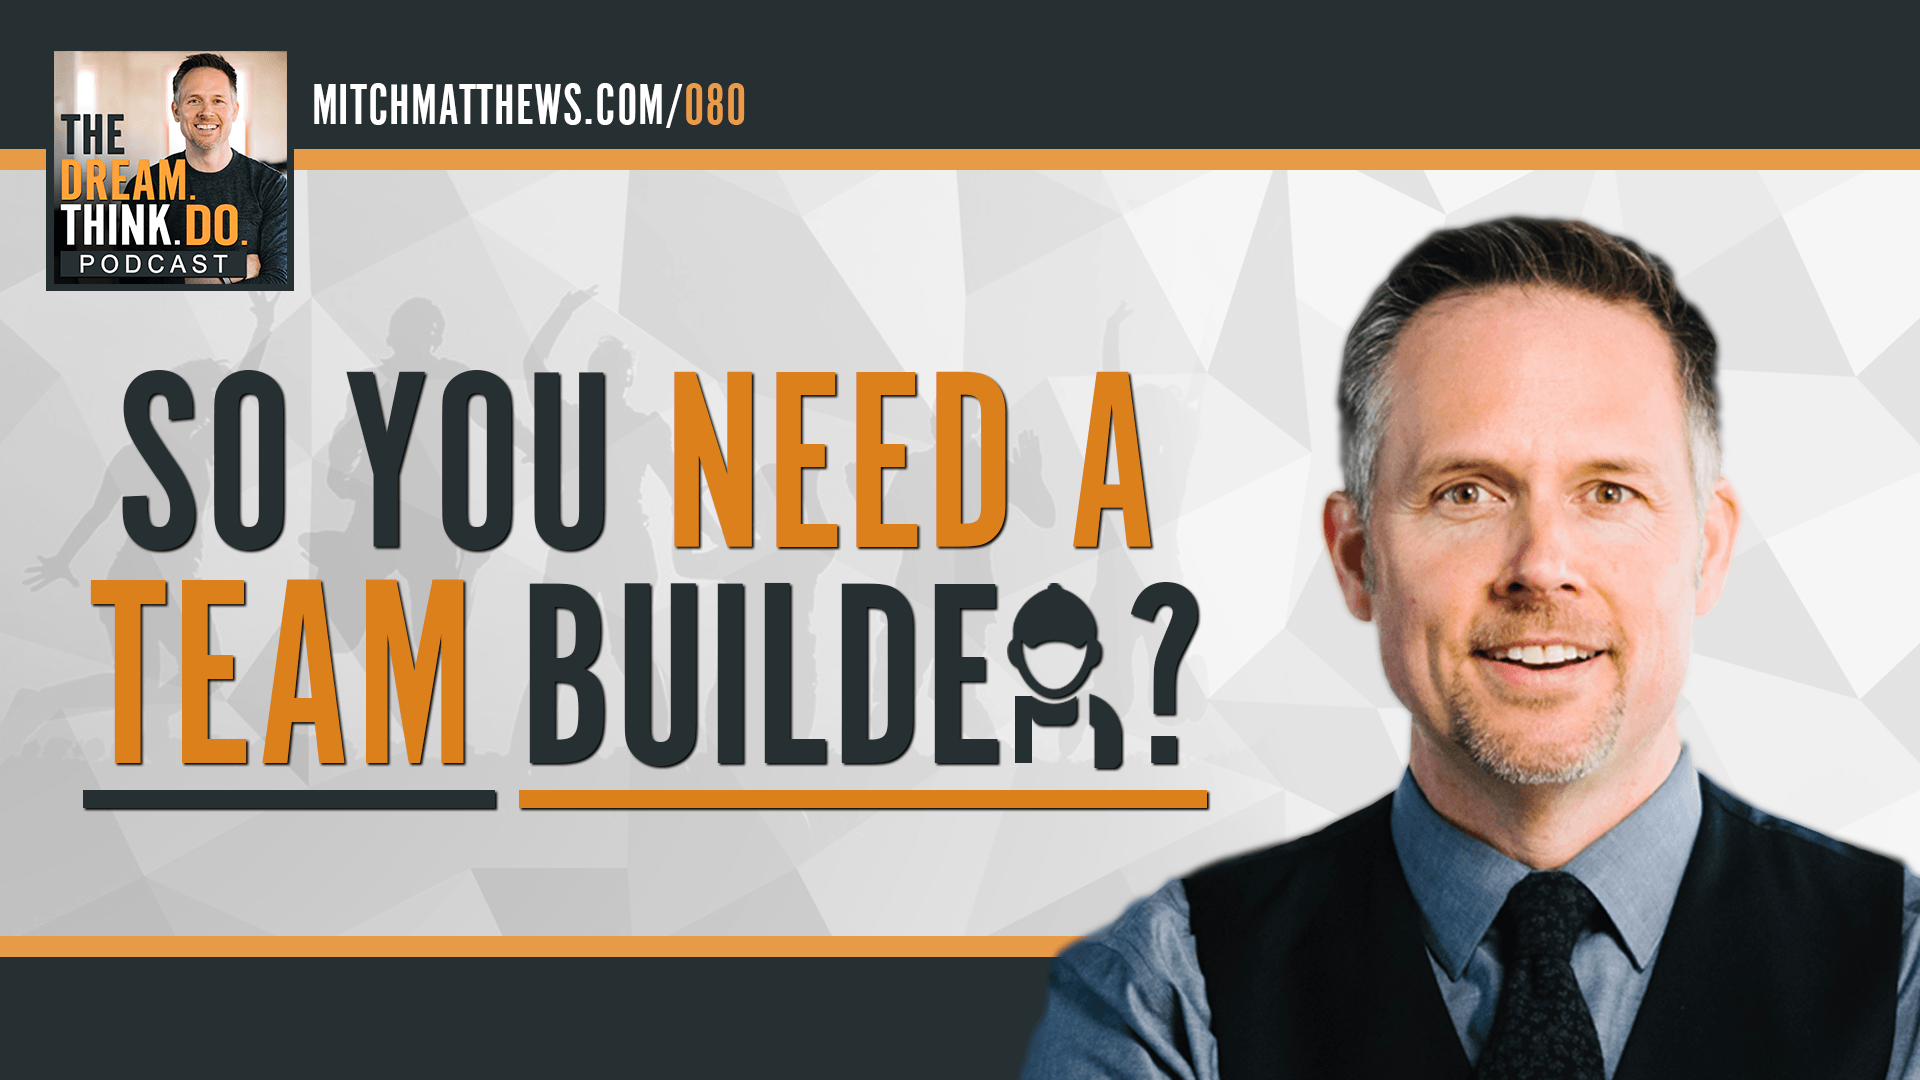 So you need a team builder?